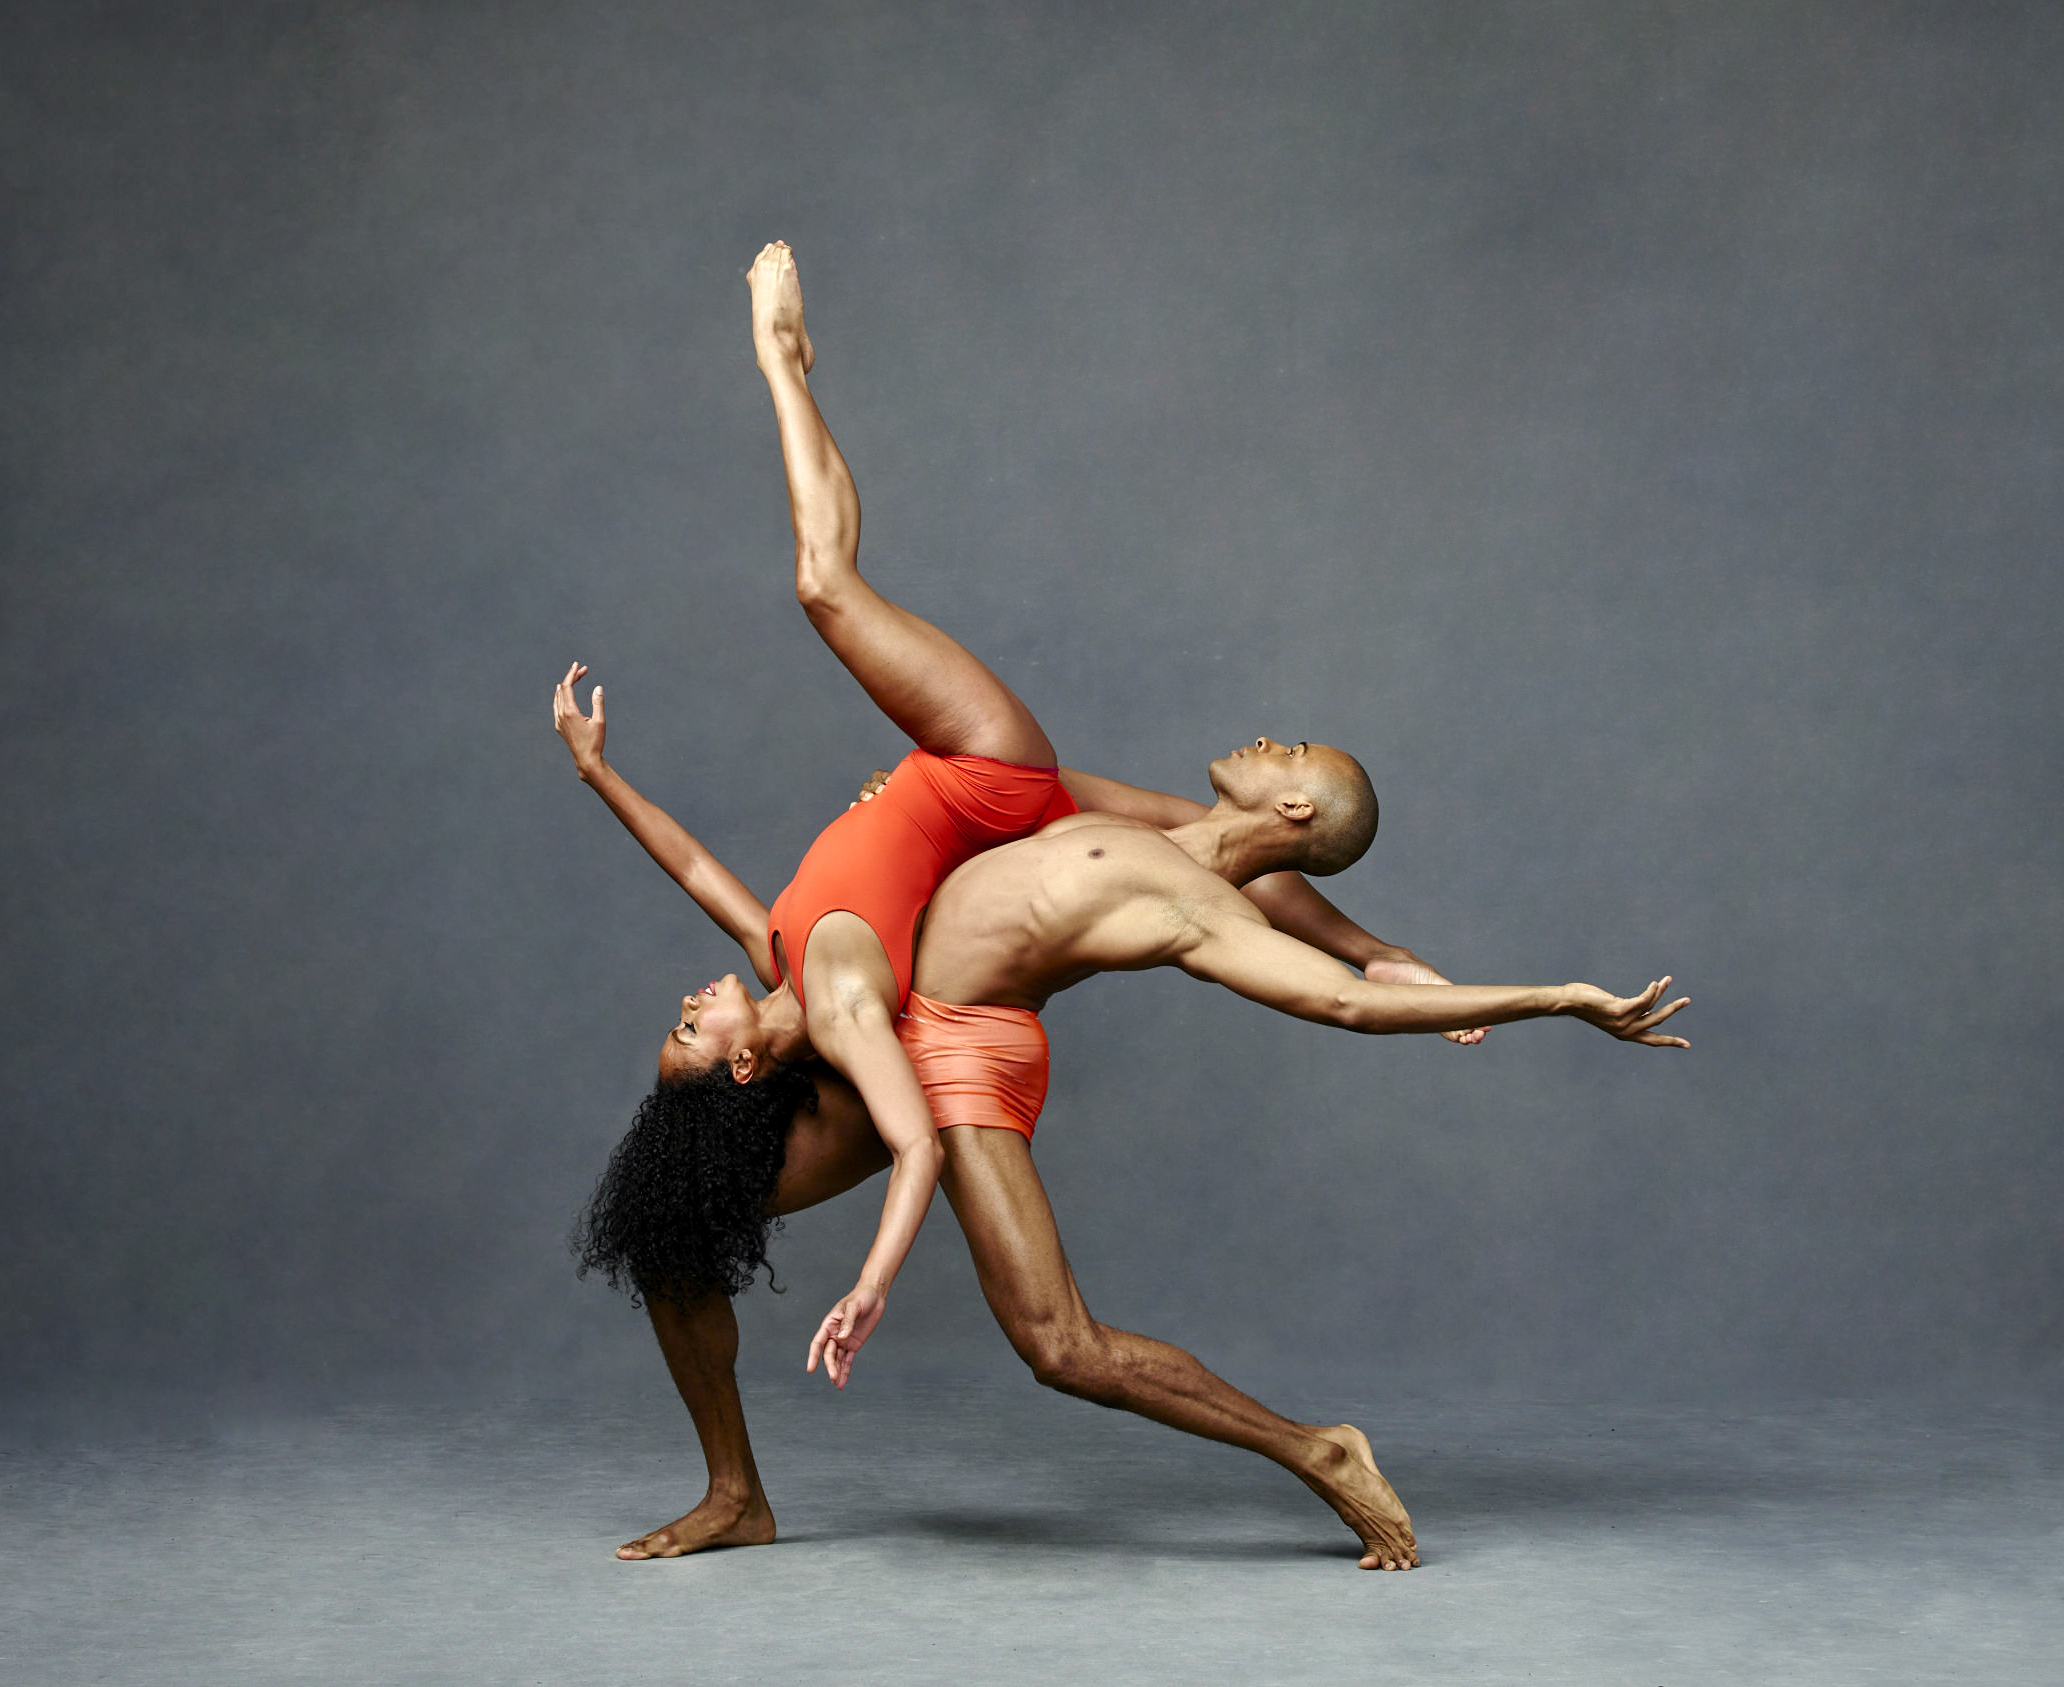 Alvin+Ailey+American+Dance+Theater's+Linda+Celeste+Sims+and+Yannick+Lebrun.+Photo+by+Andrew+Eccles_02.jpg